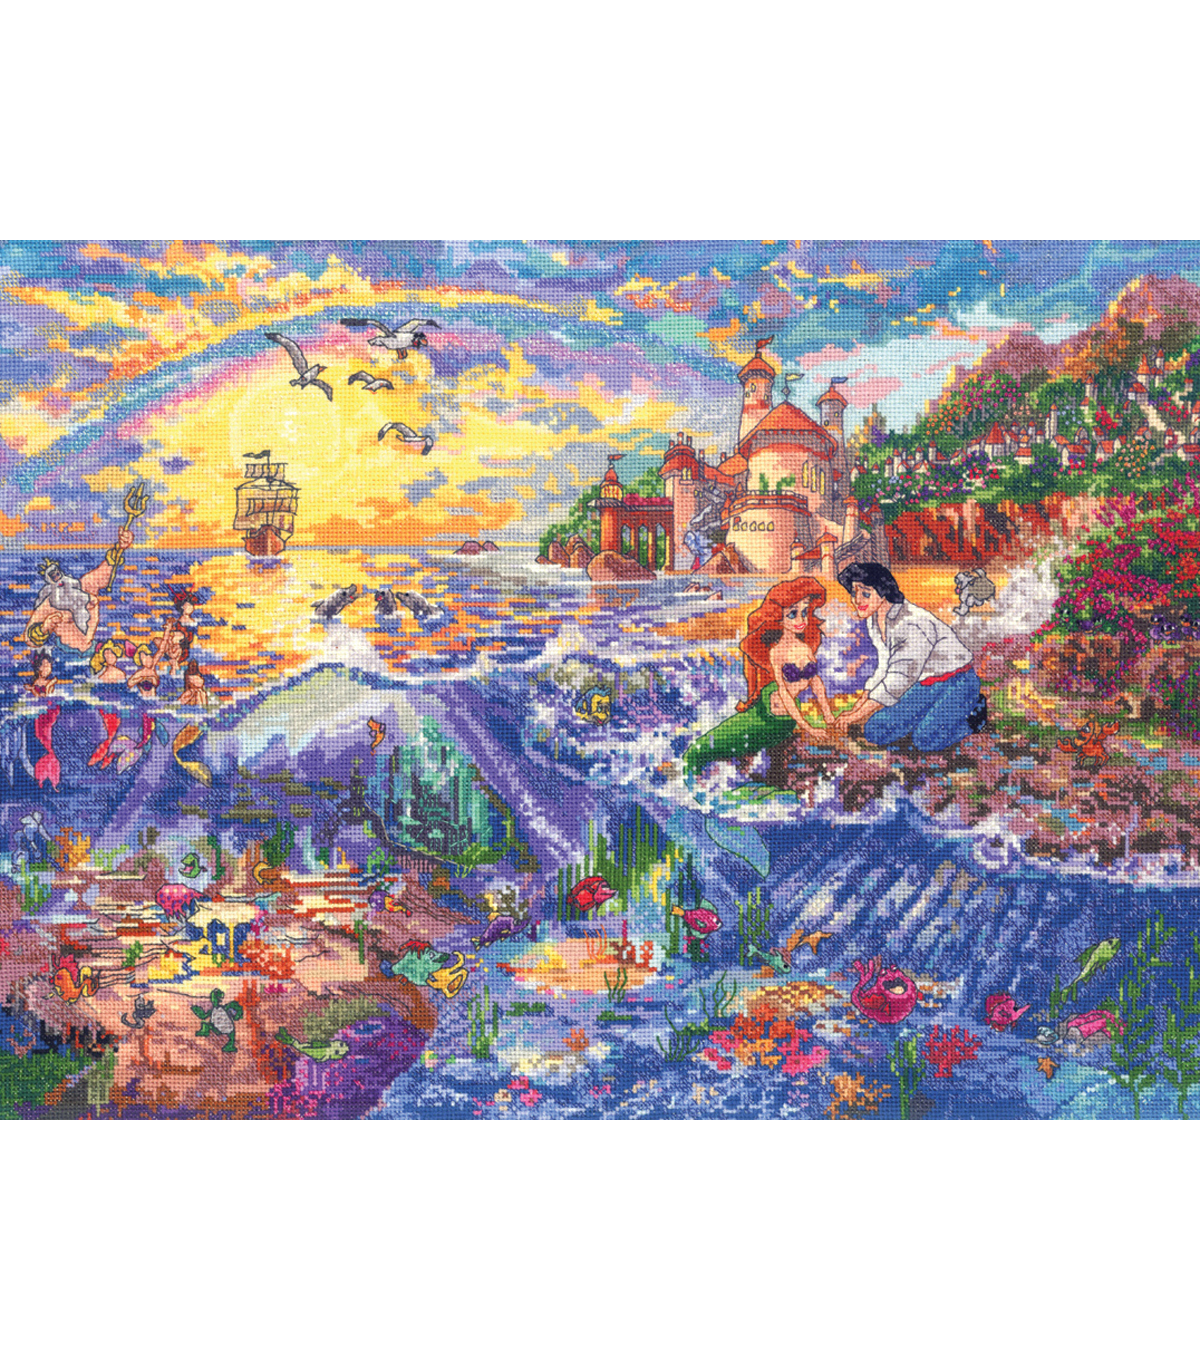 "Disney Dreams Collection By Thomas Kinkade Little Mermaid-16""X12"" 18 Count"